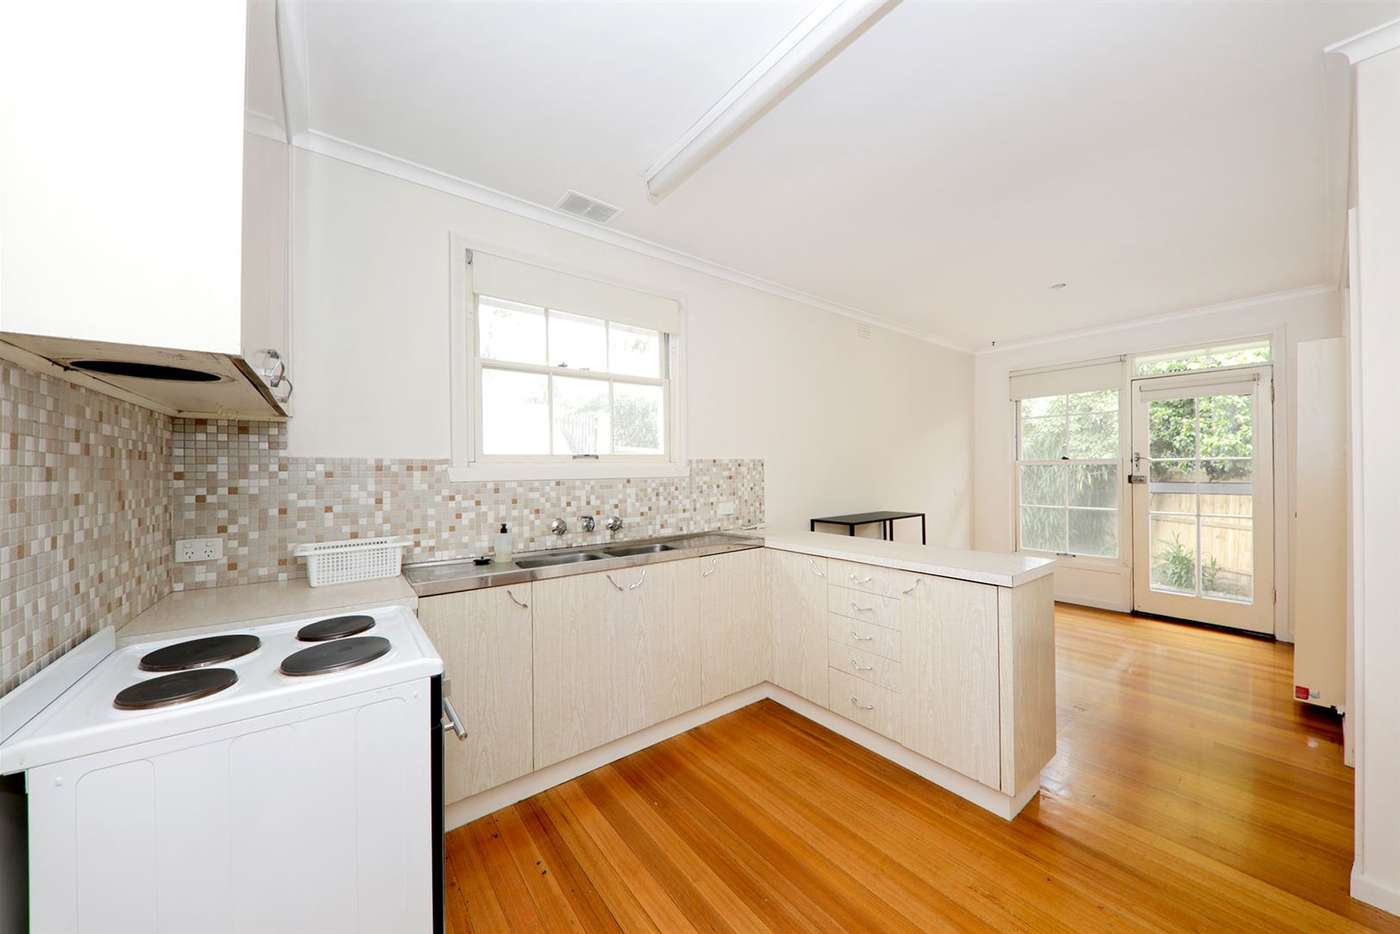 Sixth view of Homely unit listing, 8/12 Mummery Street, Mount Waverley VIC 3149